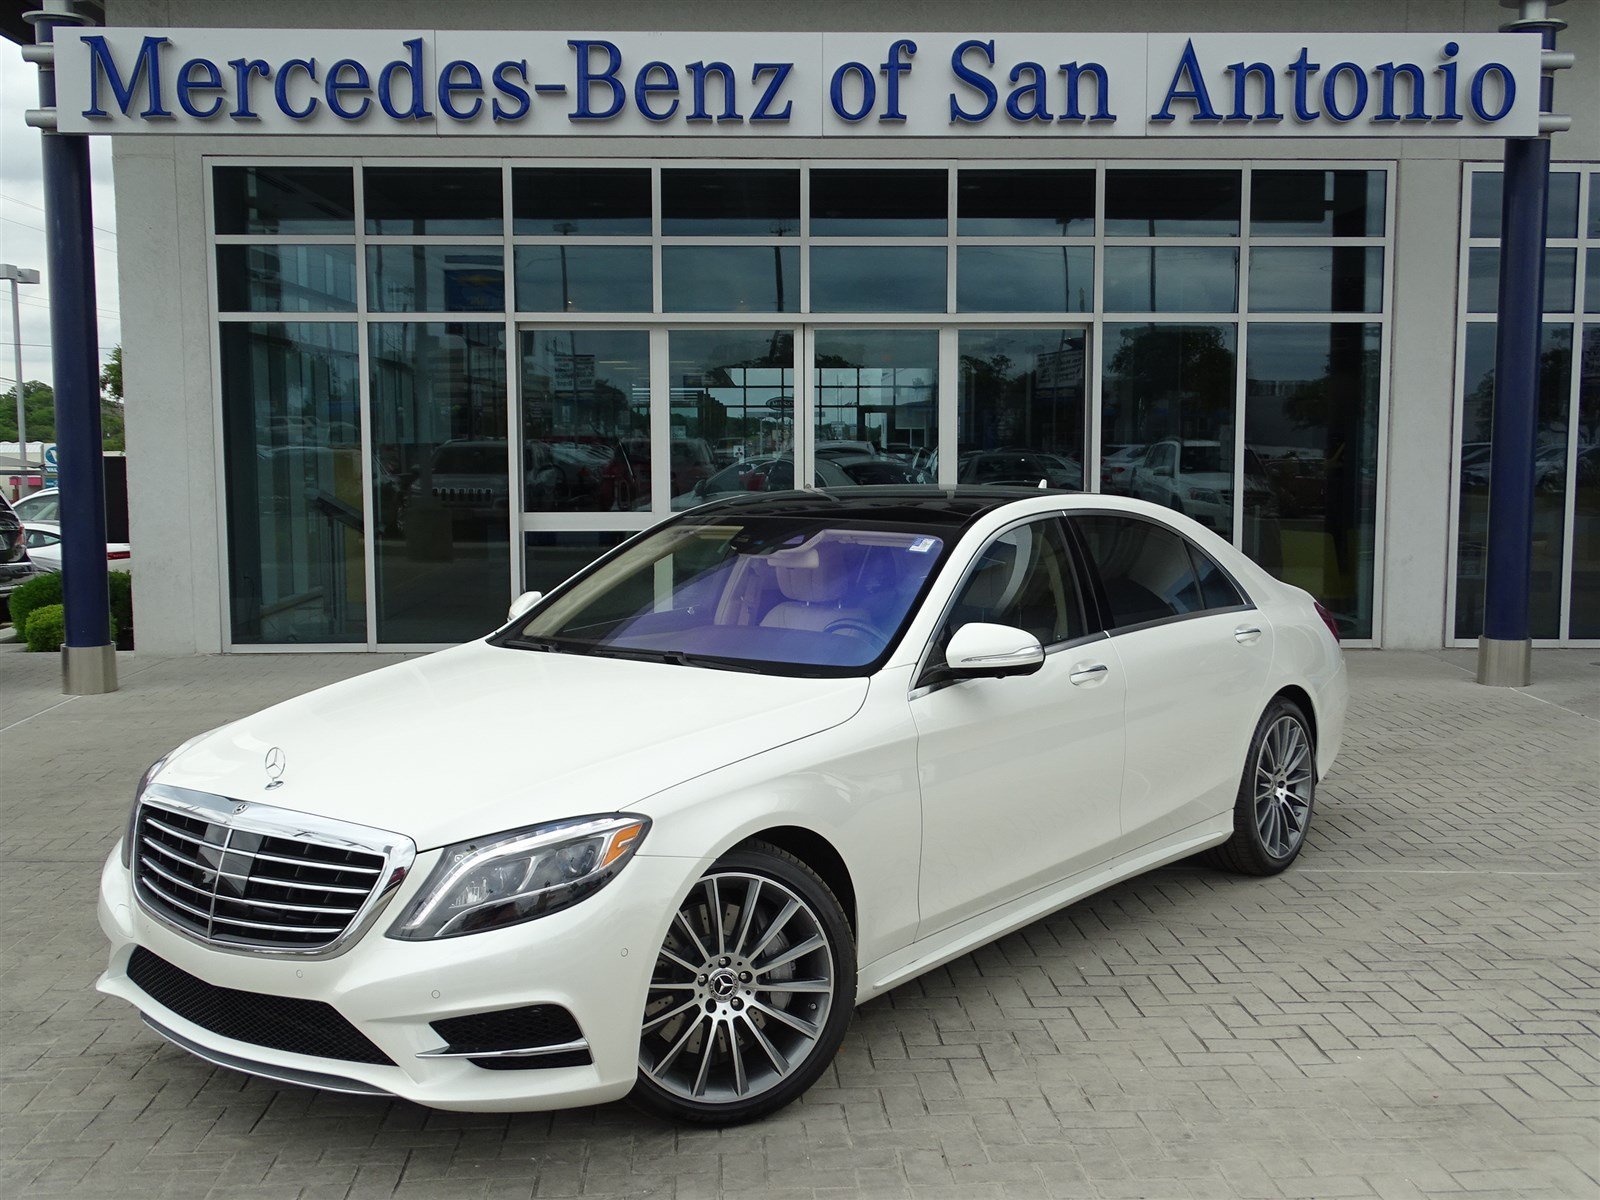 New 2017 mercedes benz s class s 550 sedan in san antonio for Mercedes benz in san antonio